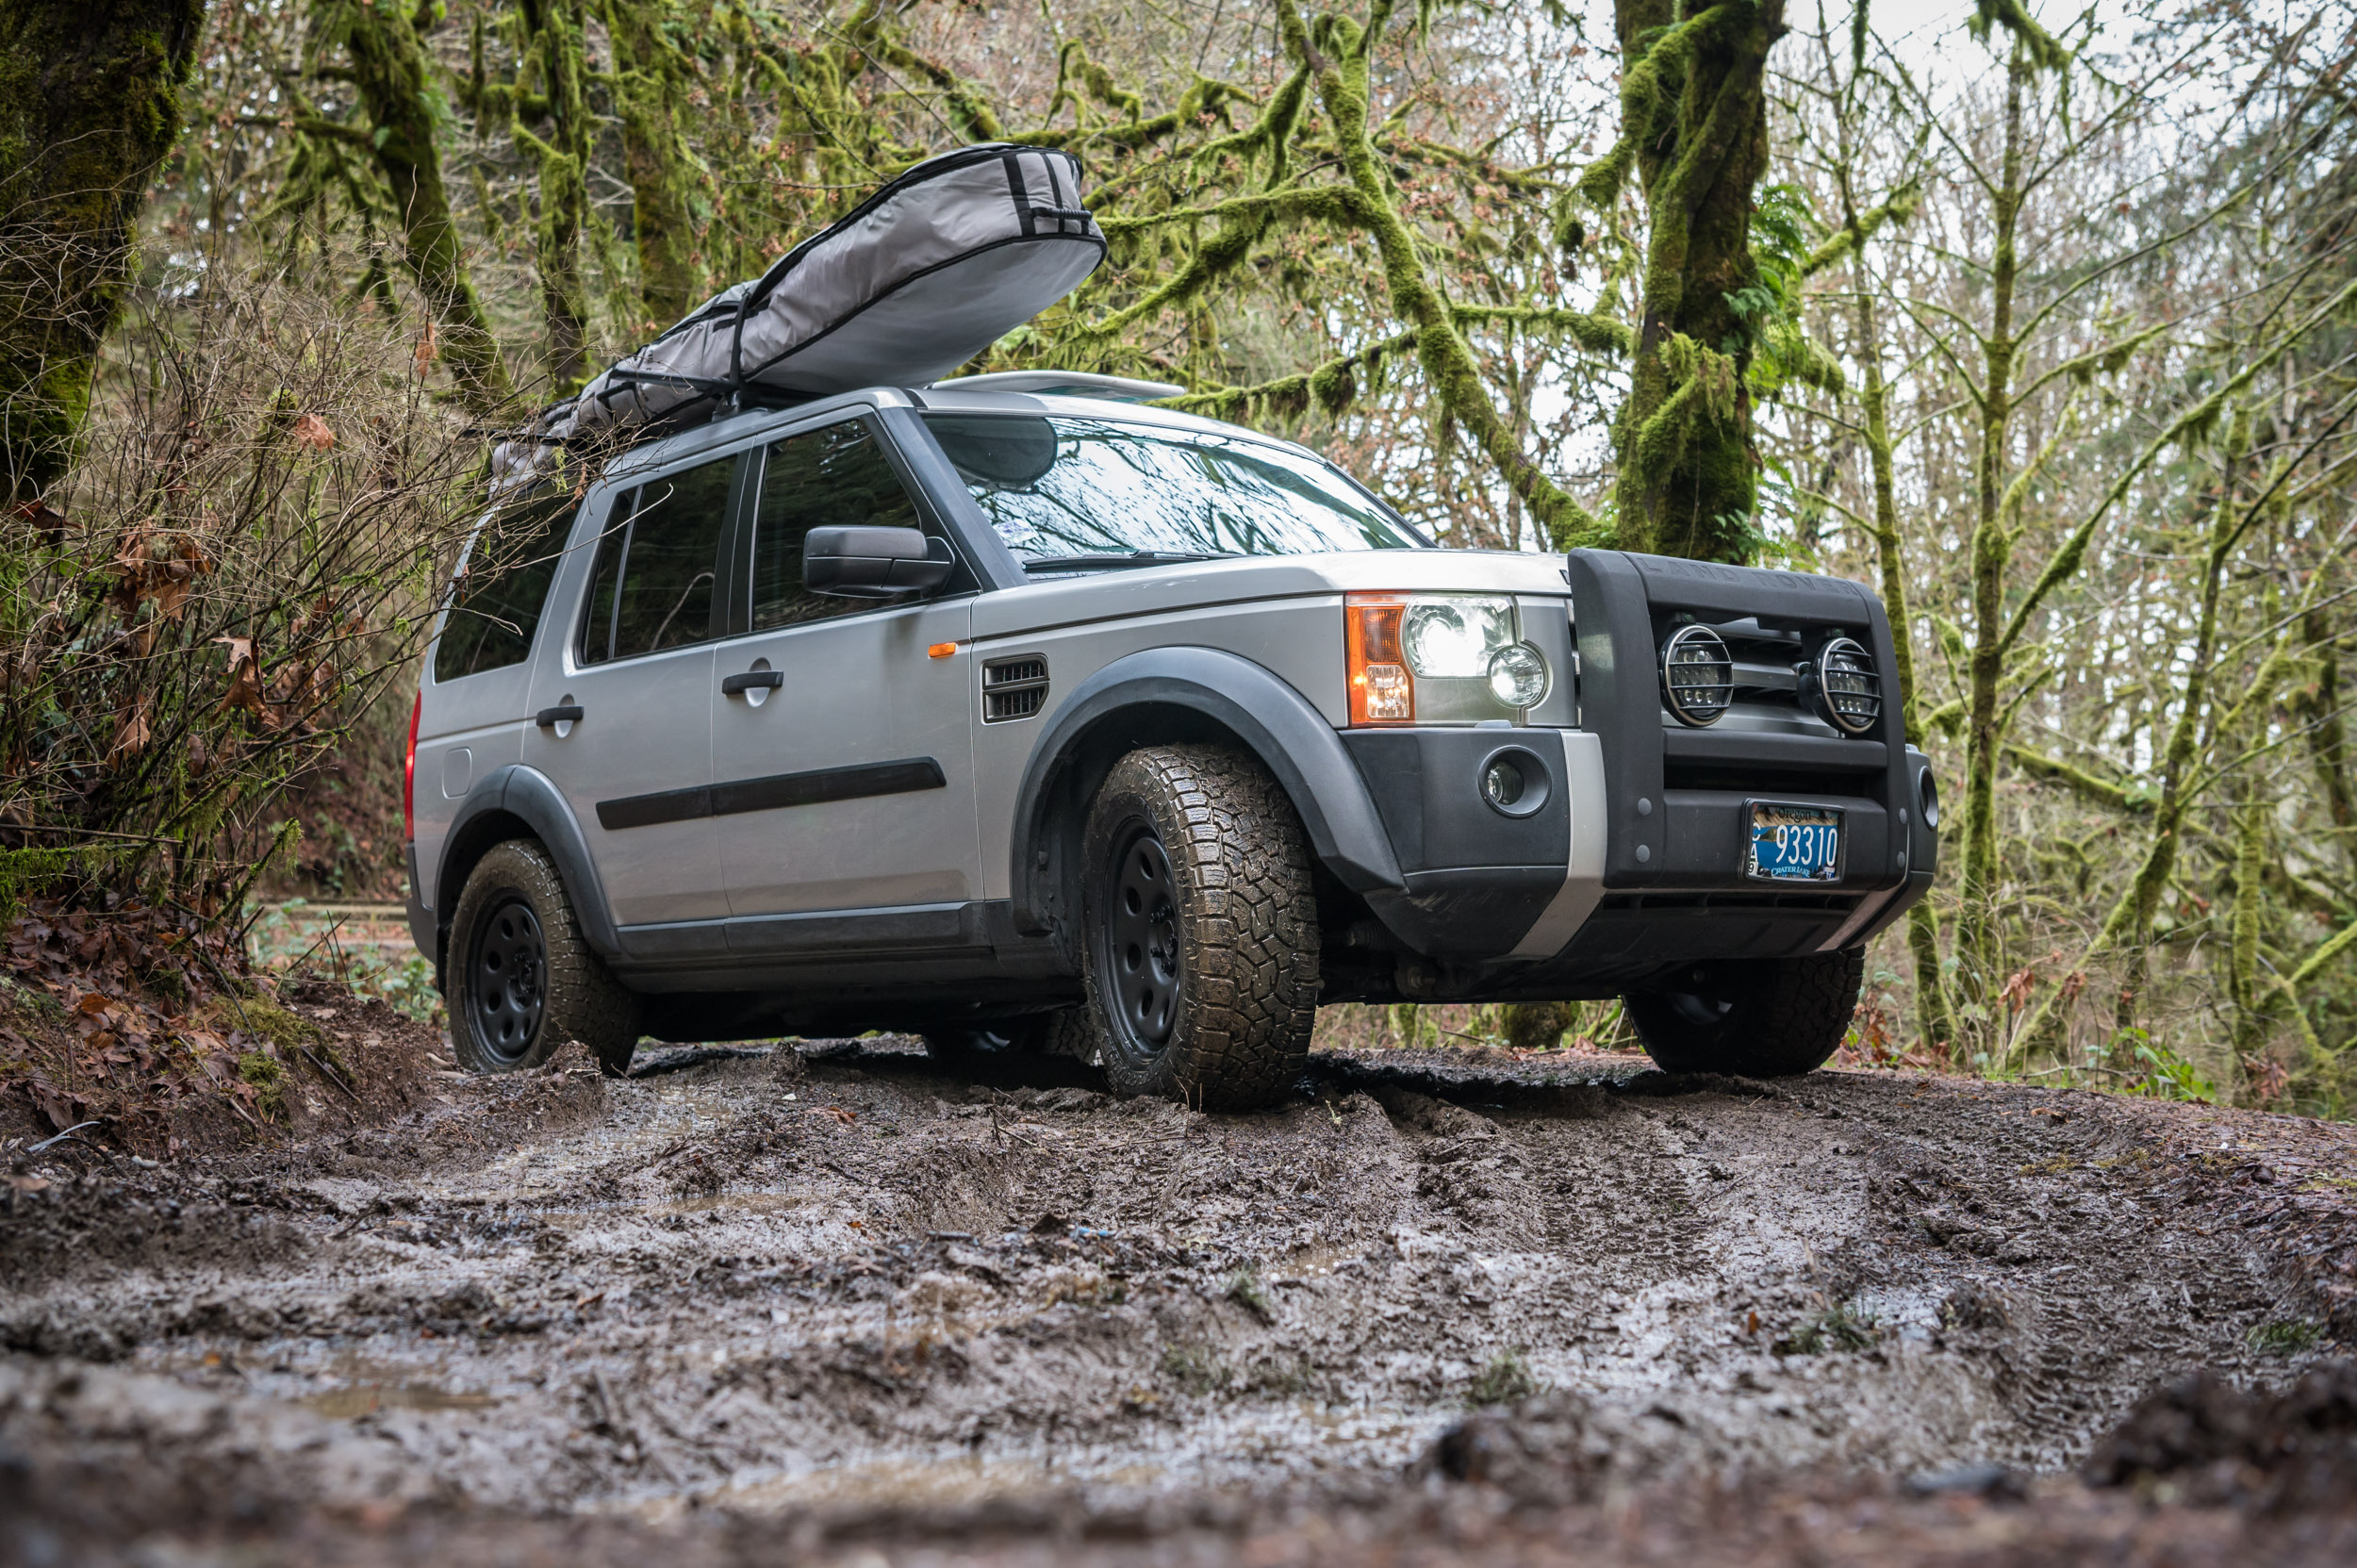 land rover lr3 in mud on toyo open country atiii tires